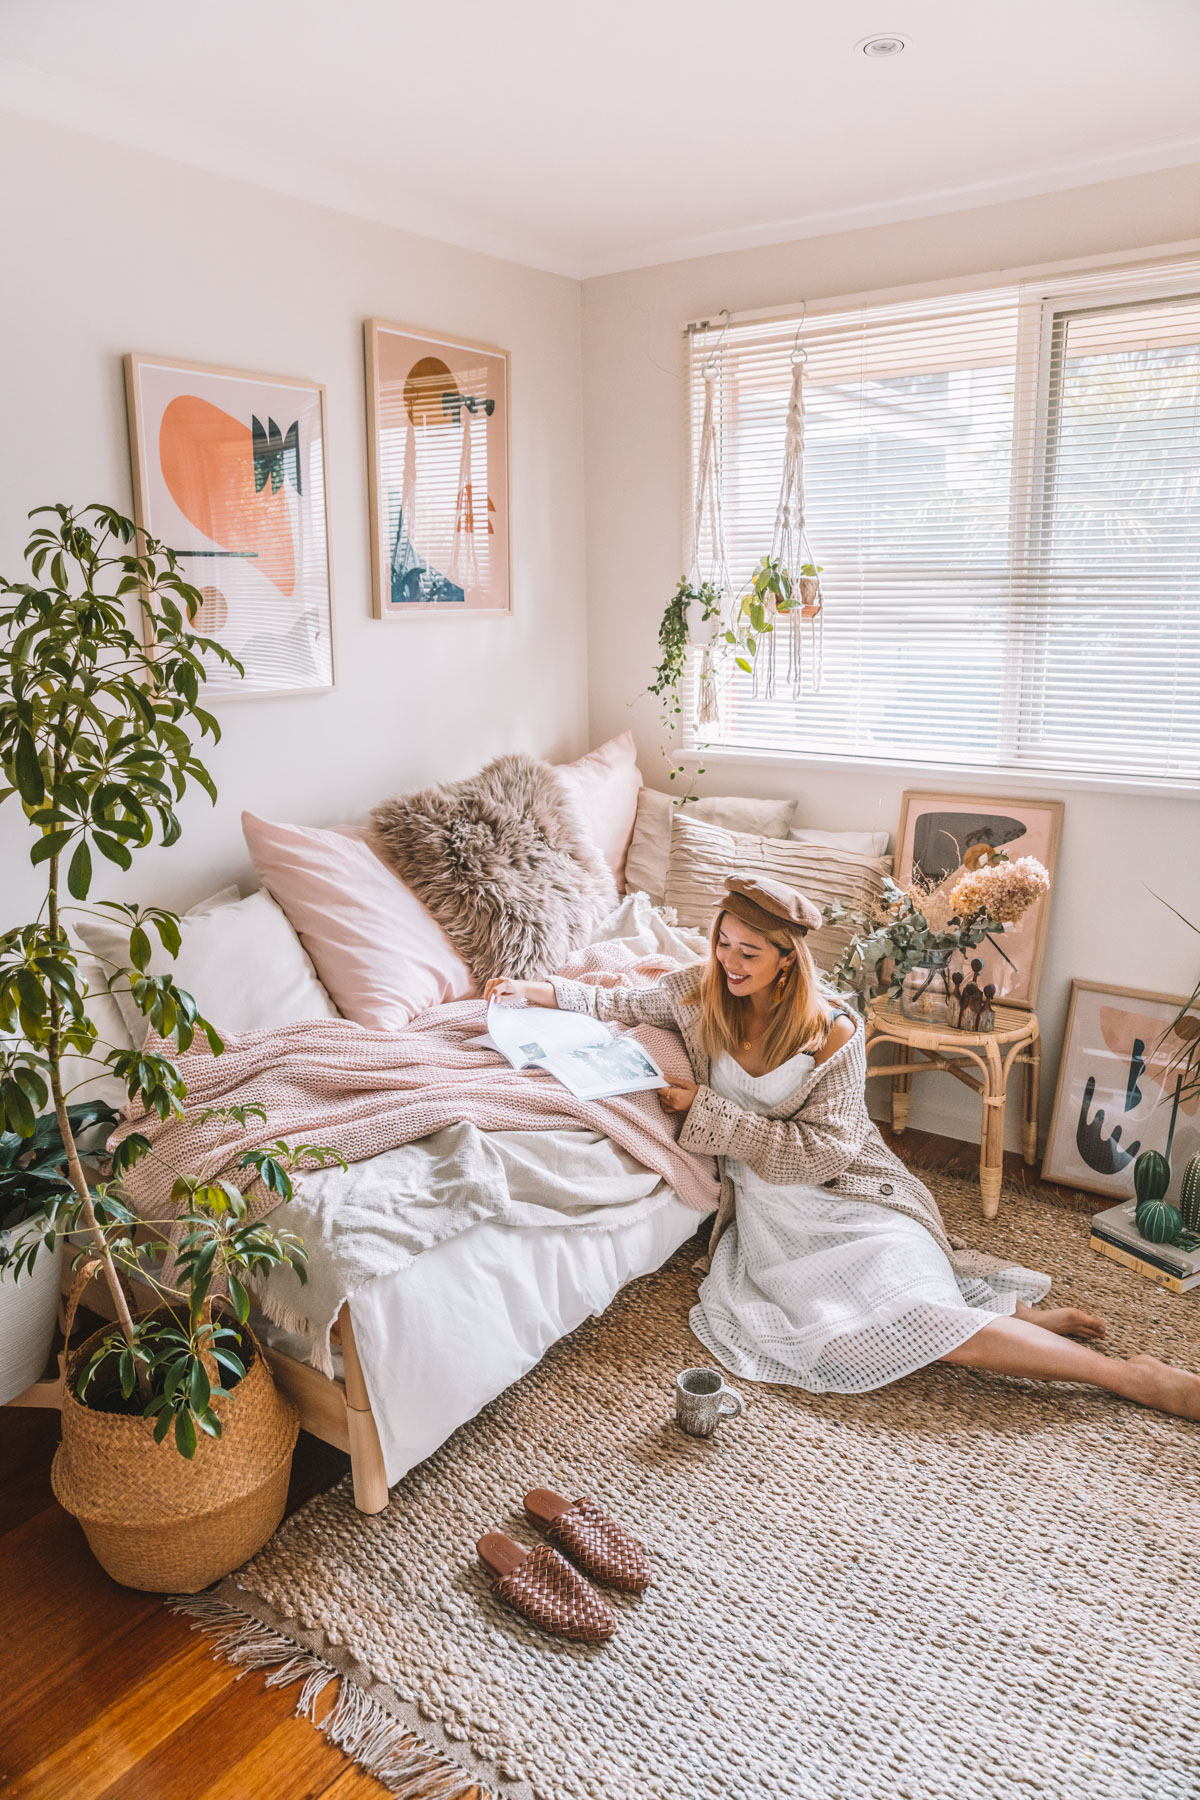 Creating our dream guest bedroom with IKEA — CONNIE AND LUNA